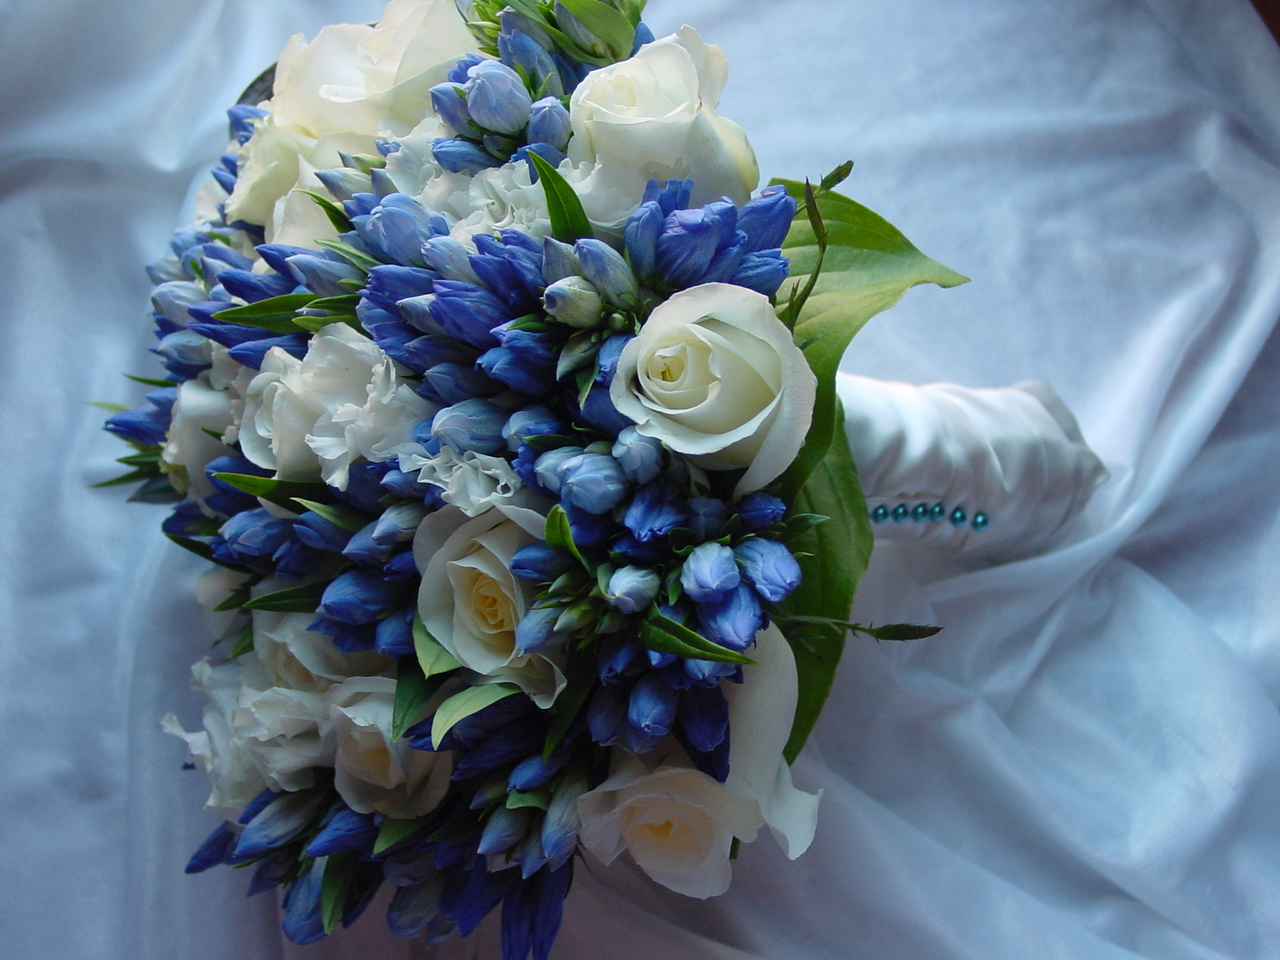 Wedding flowers blue wedding bouquet flowers for Best flowers for wedding bouquet